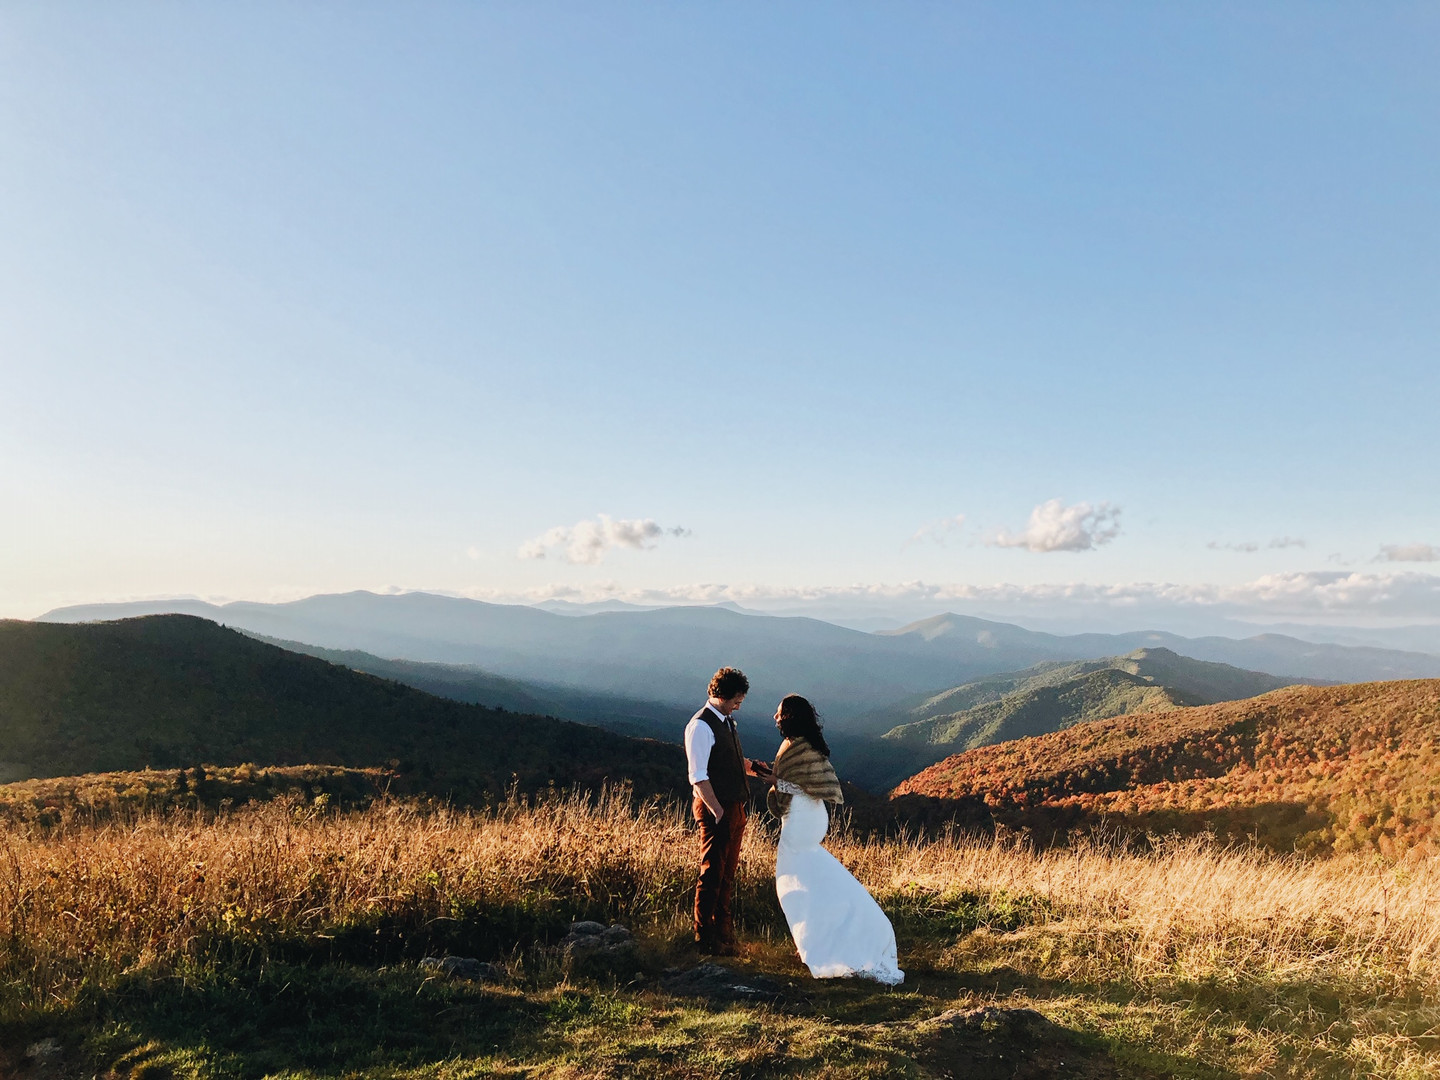 Matthew and Jessica exchanged vows overlooking the autumn colors of Black Balsam Knob.